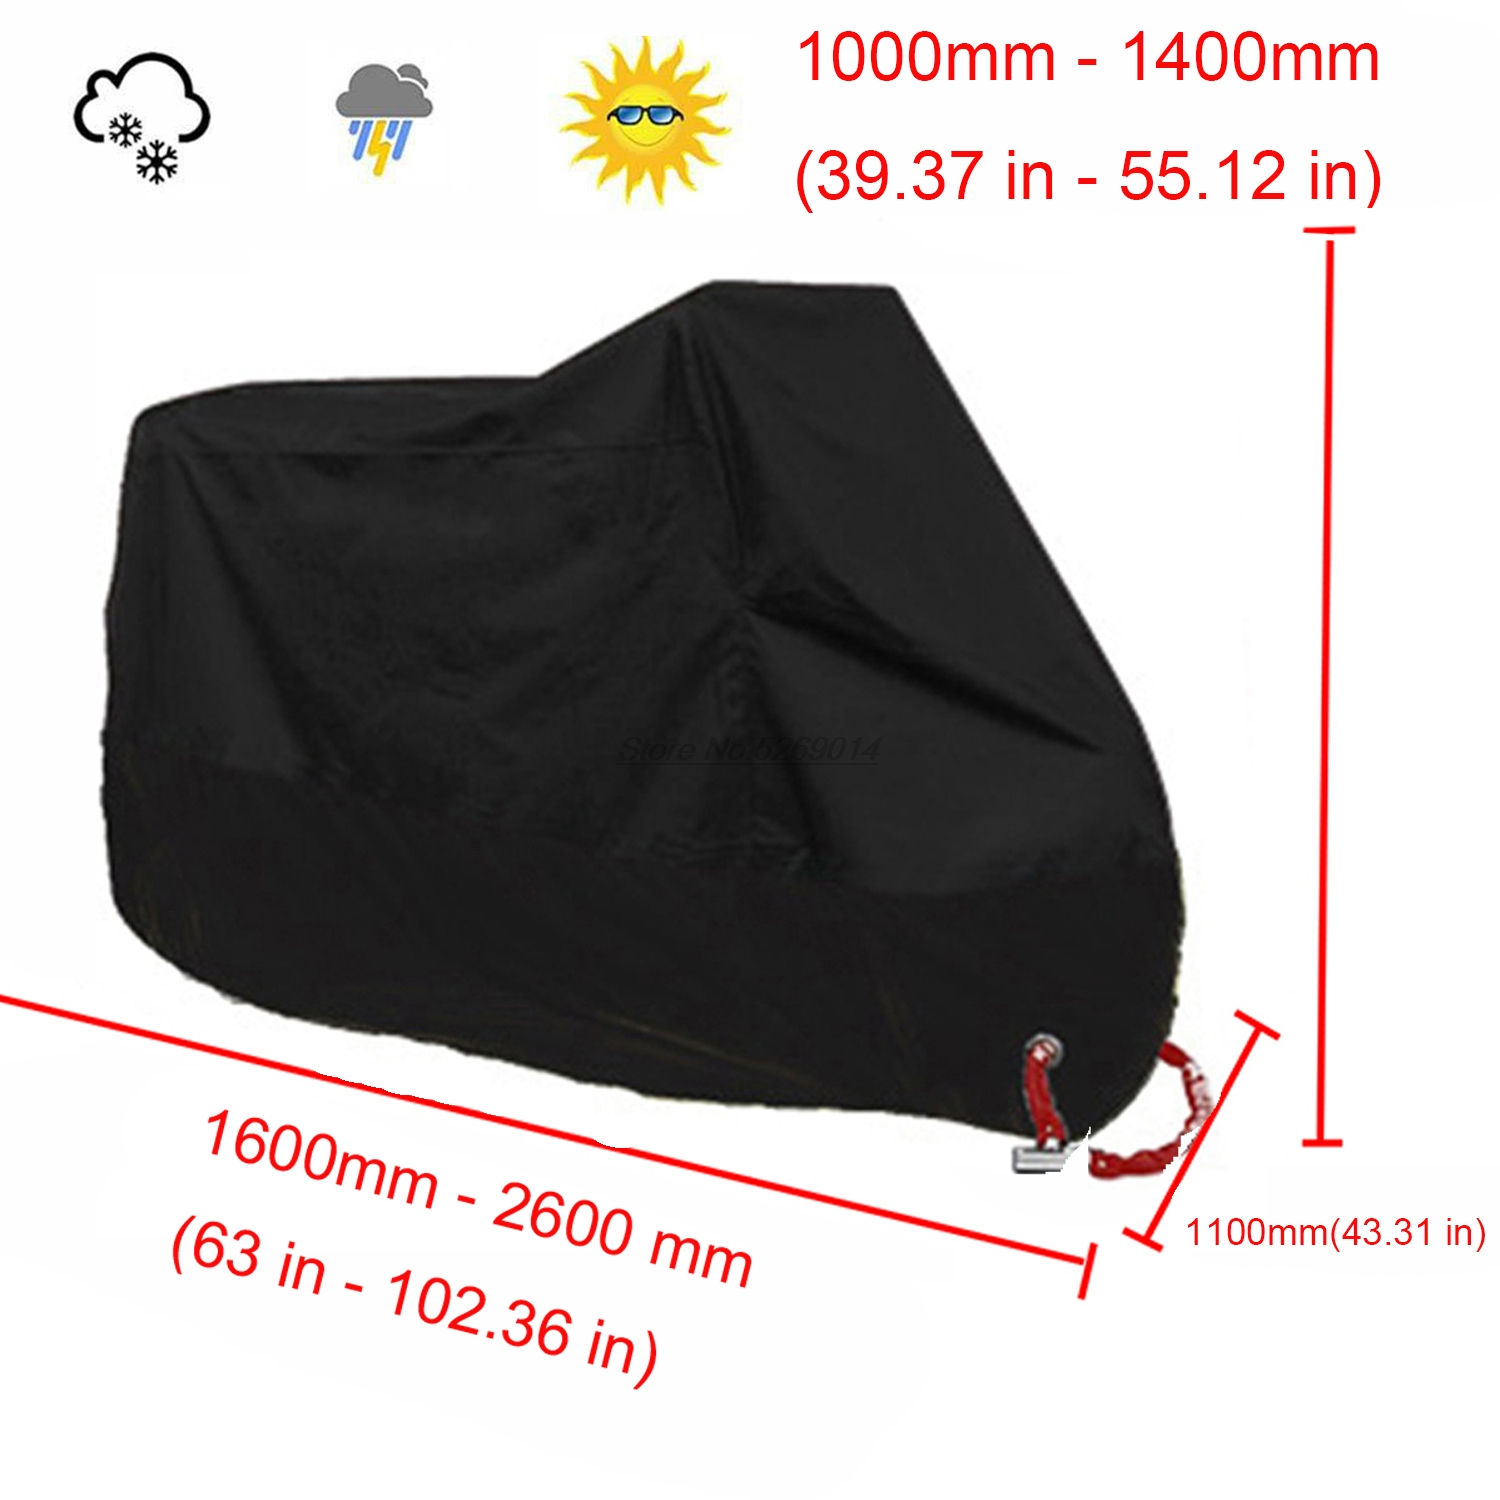 Motorcycle covers UV anti for benelli trk 502 accessories gsxr600 gsxr k5 <font><b>honda</b></font> cb 500f <font><b>honda</b></font> <font><b>nc</b></font> <font><b>700</b></font> fork guard harley 48 KTM image